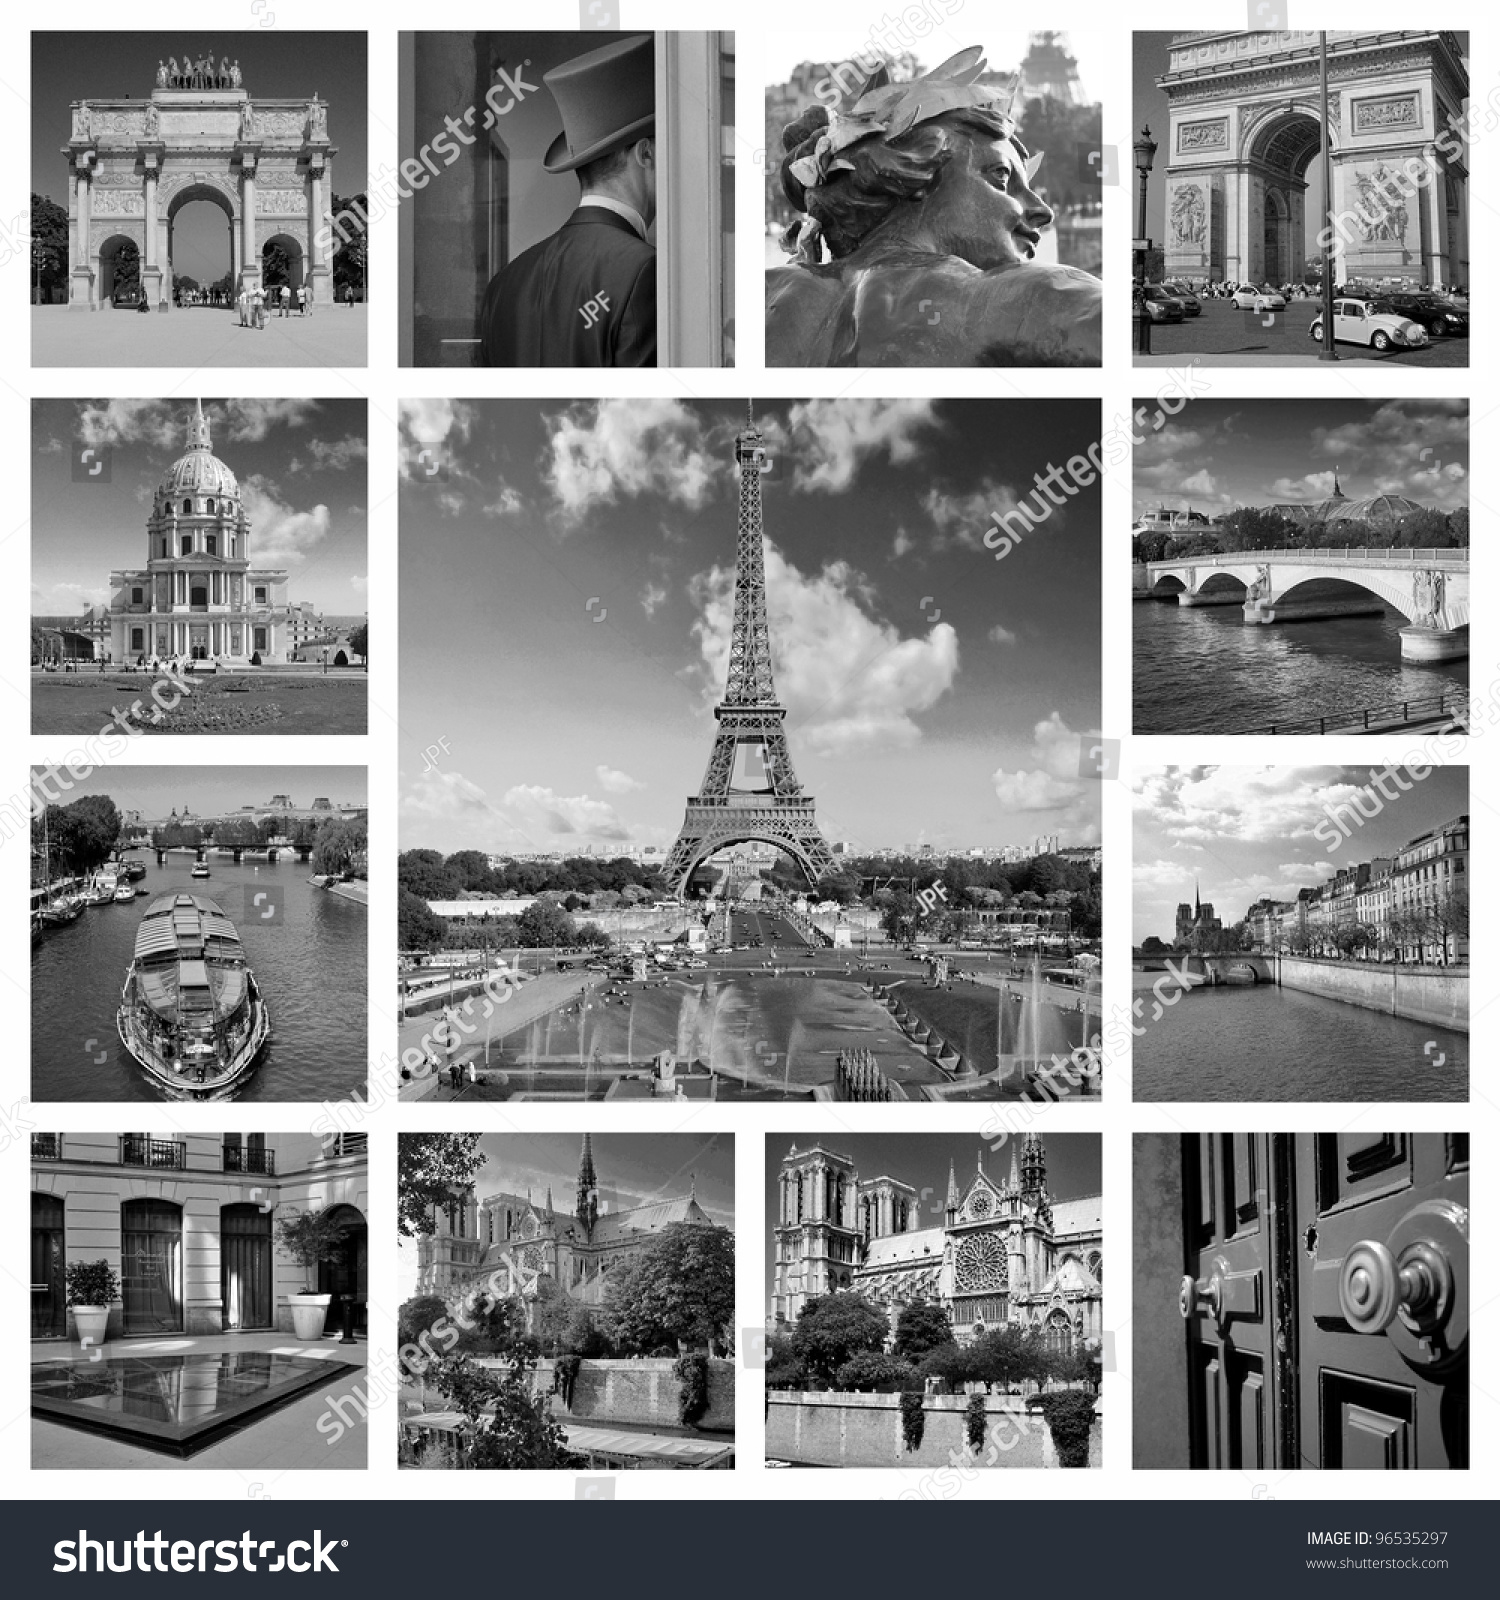 Beautiful Black And White Photos Of The Eiffel Tower In Paris Other Famous Places